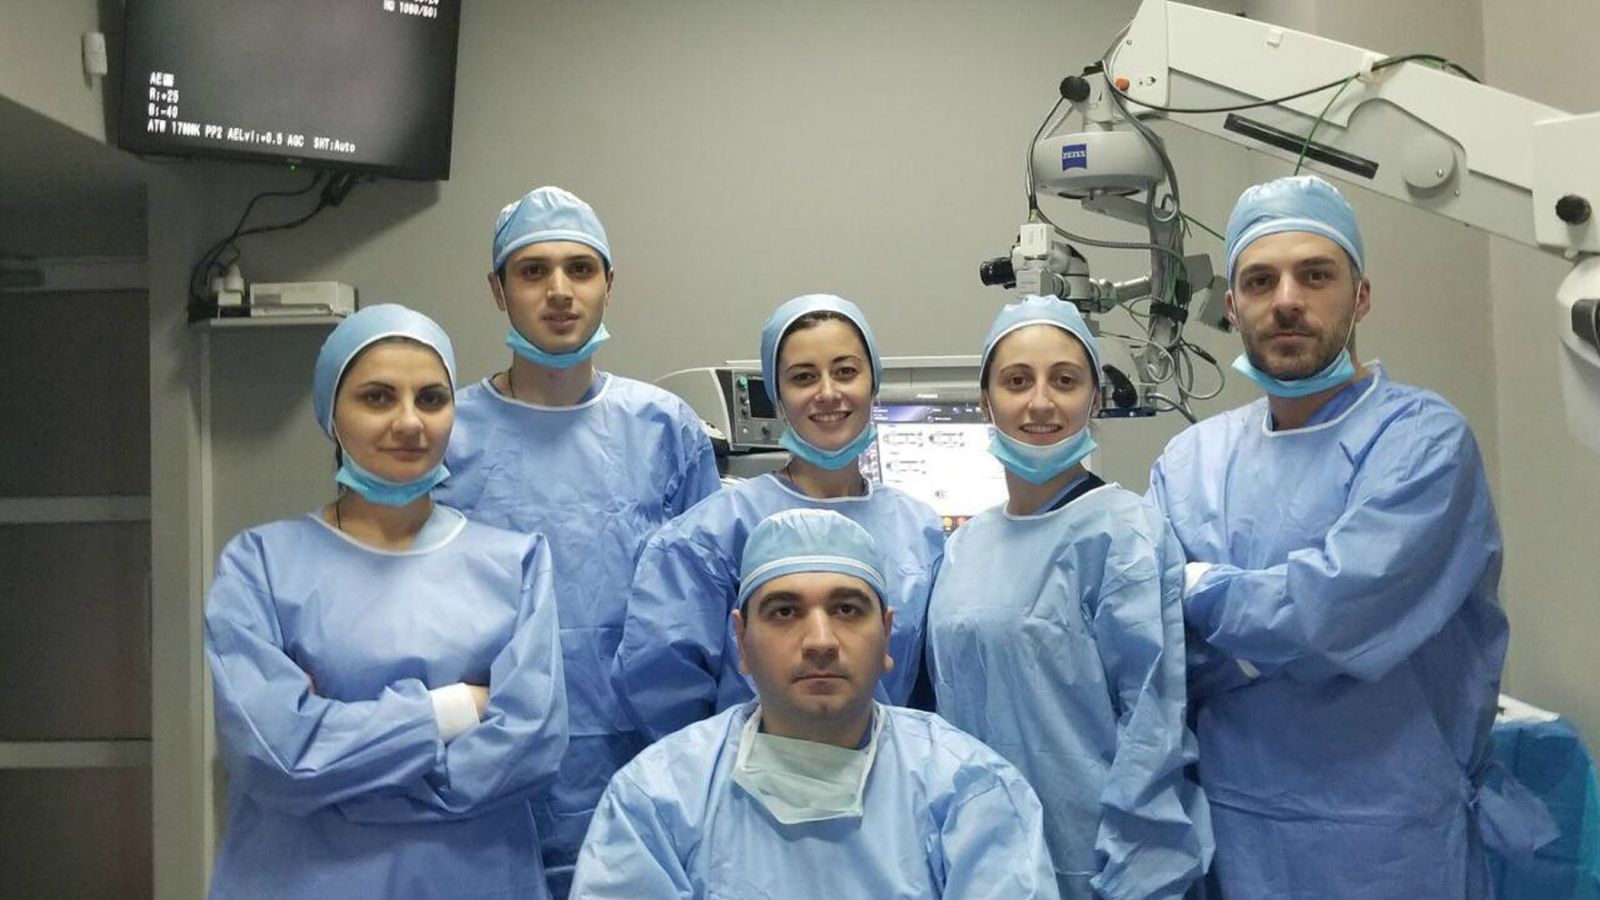 Tekla Mamageishvili and her colleagues after successful eye surgery